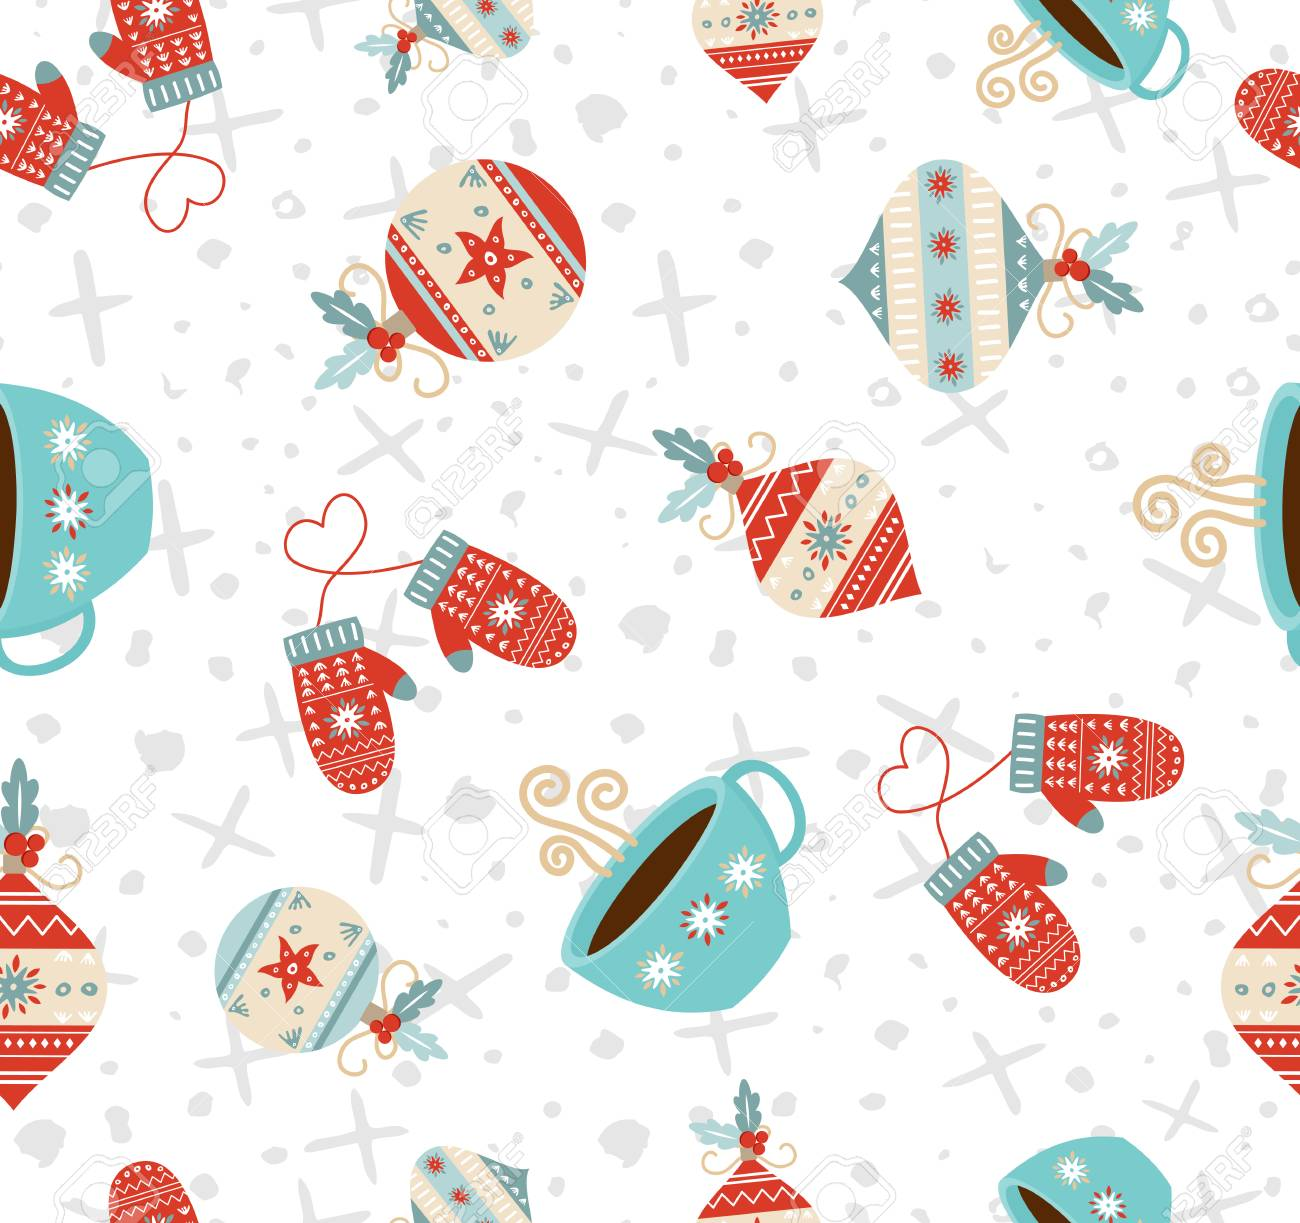 Christmas Backgrounds Cute.Merry Christmas Seamless Pattern Background Cute Holiday Decoration